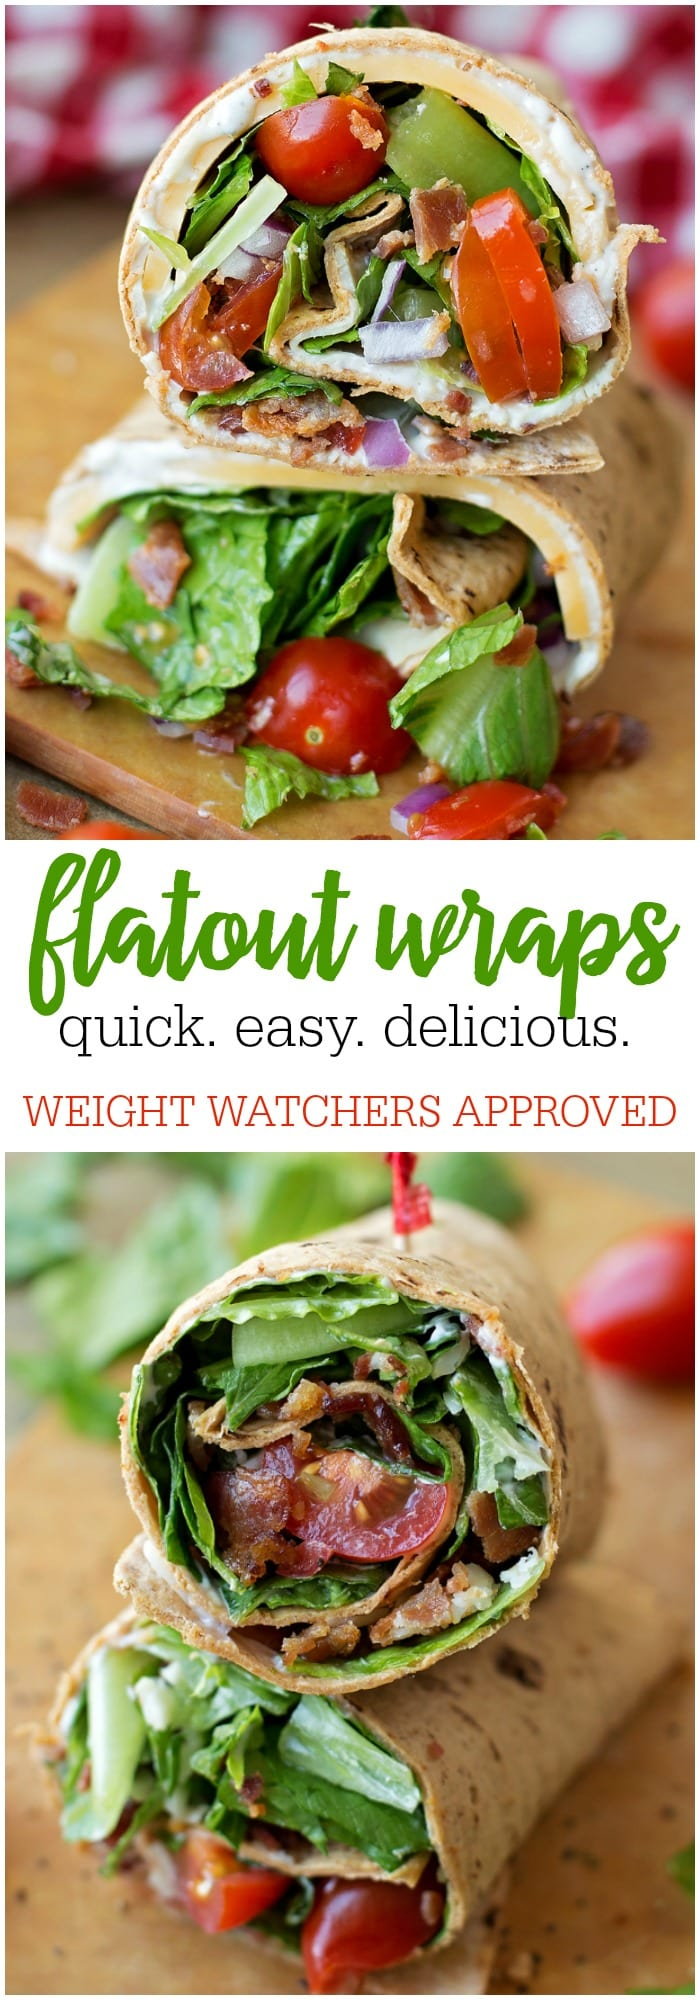 Flatout Wraps - simple, delicious and perfect for lunch or dinner and is Weight Watchers approved!